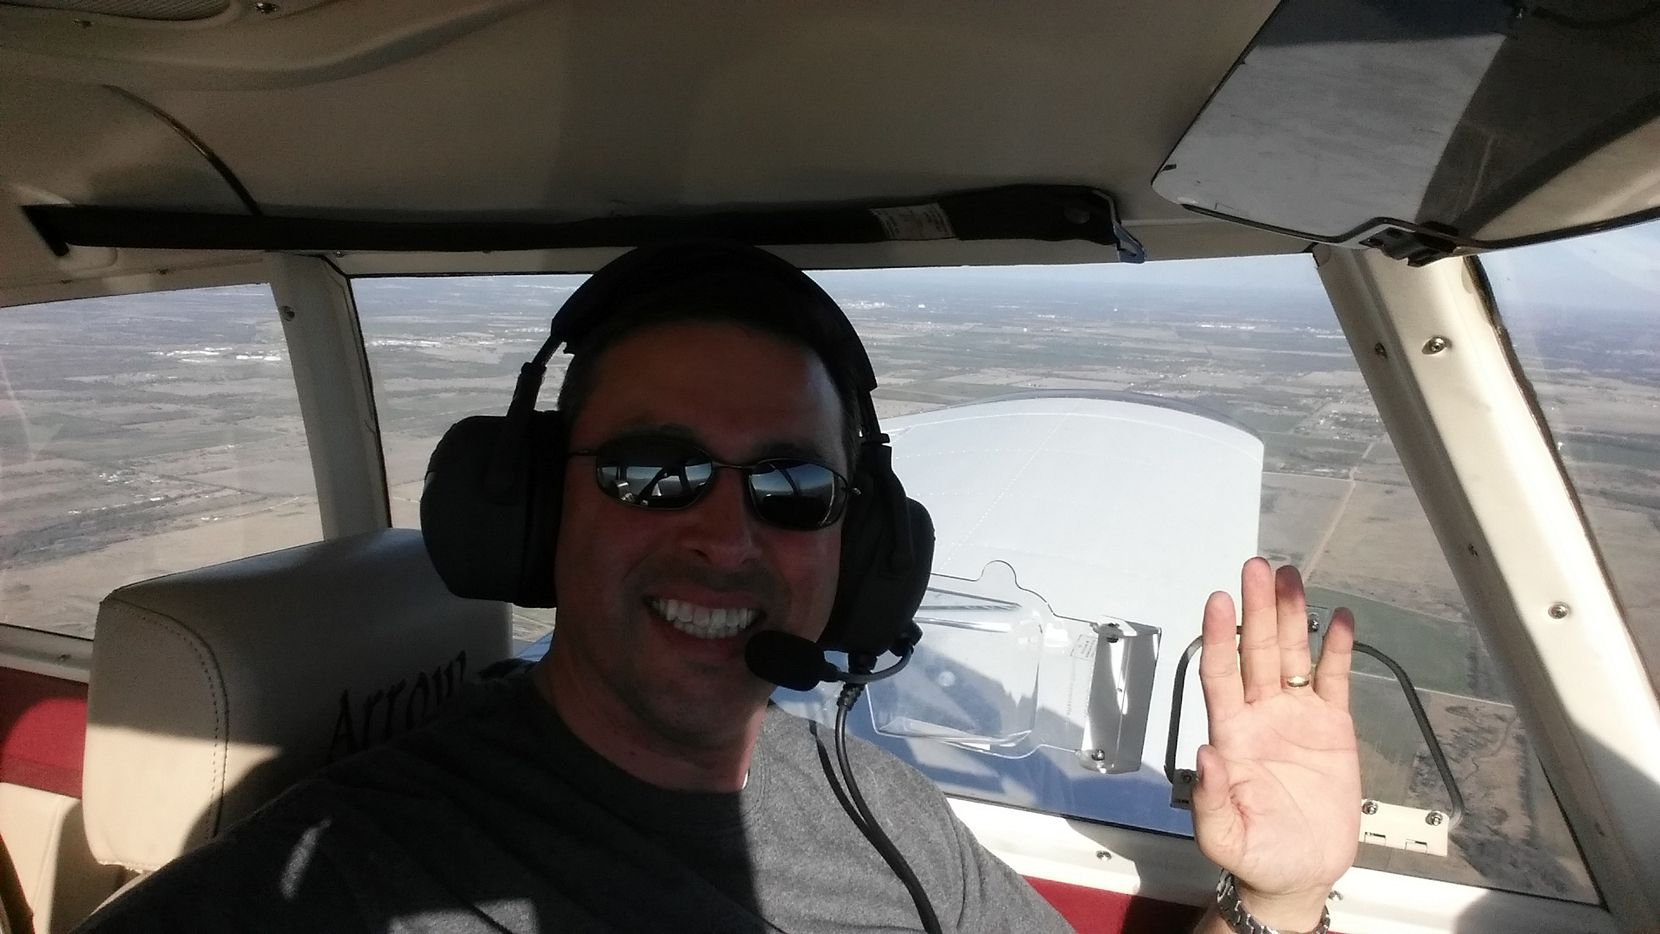 Robert Navar, a 48-year-old Frisco businessman and father of two teenage daughters, was piloting the second plane. (Photo submitted by BROOKE NAVAR)